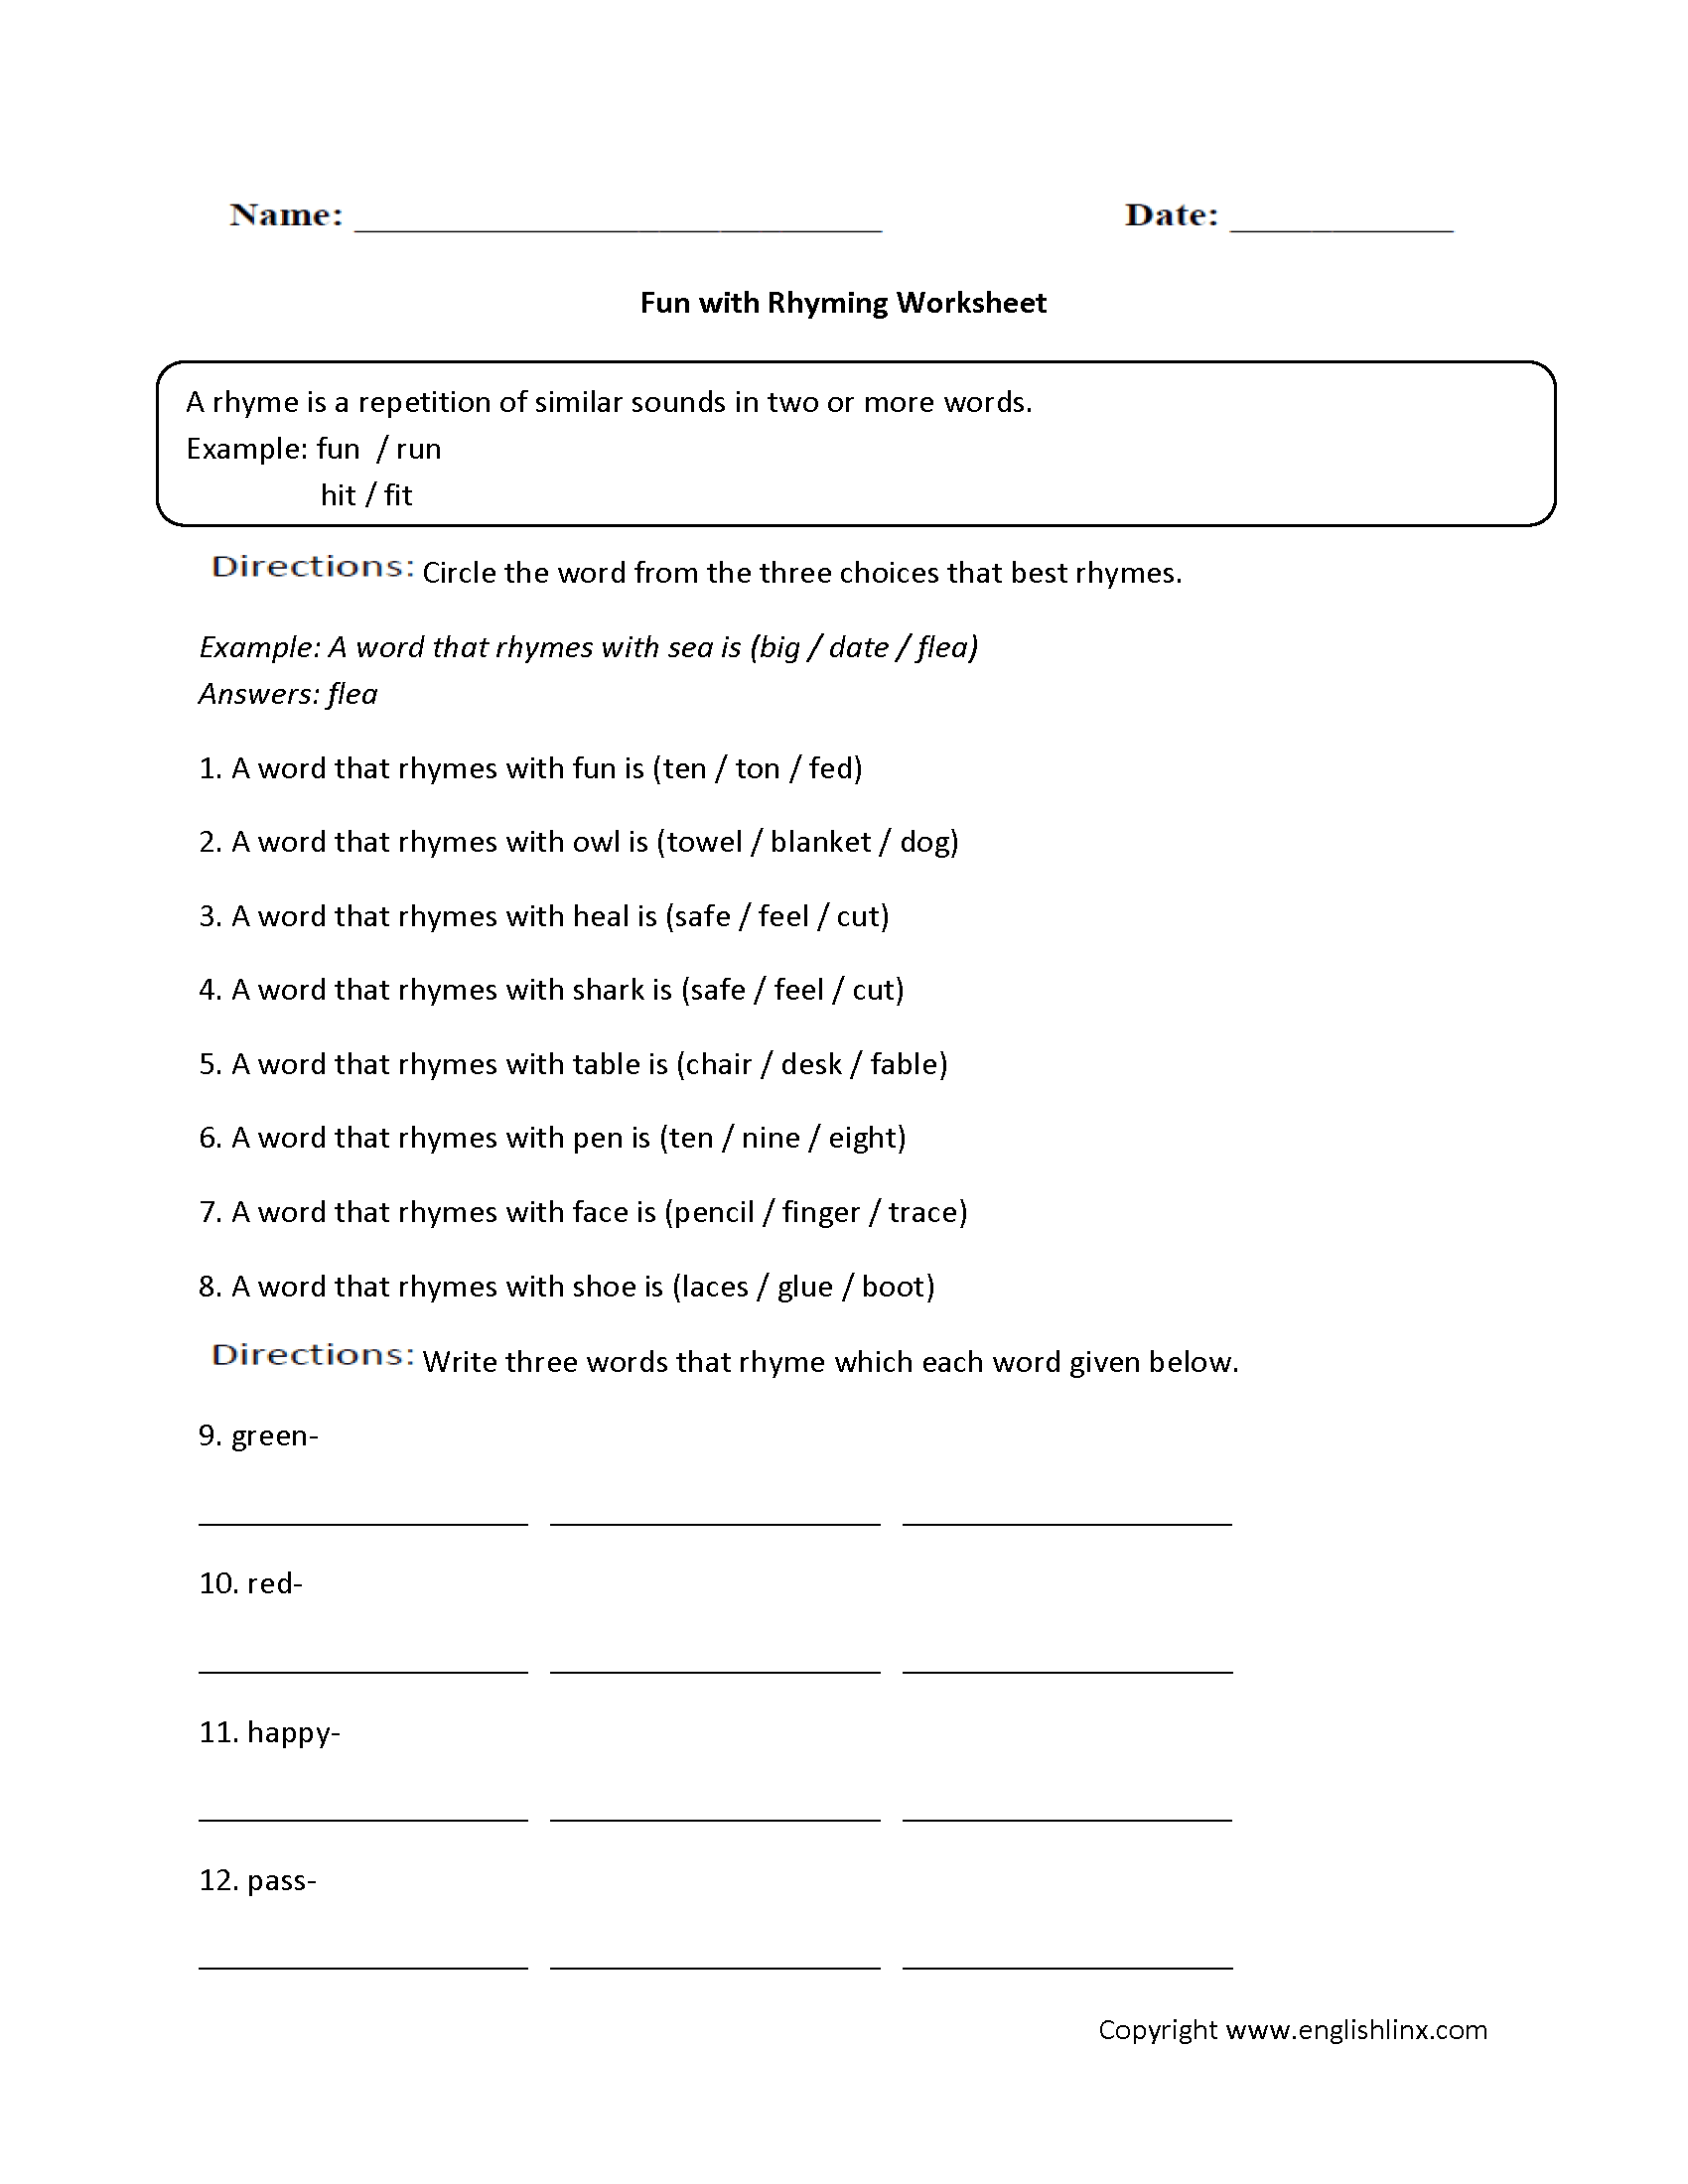 Englishlinx – Free Rhyming Worksheets